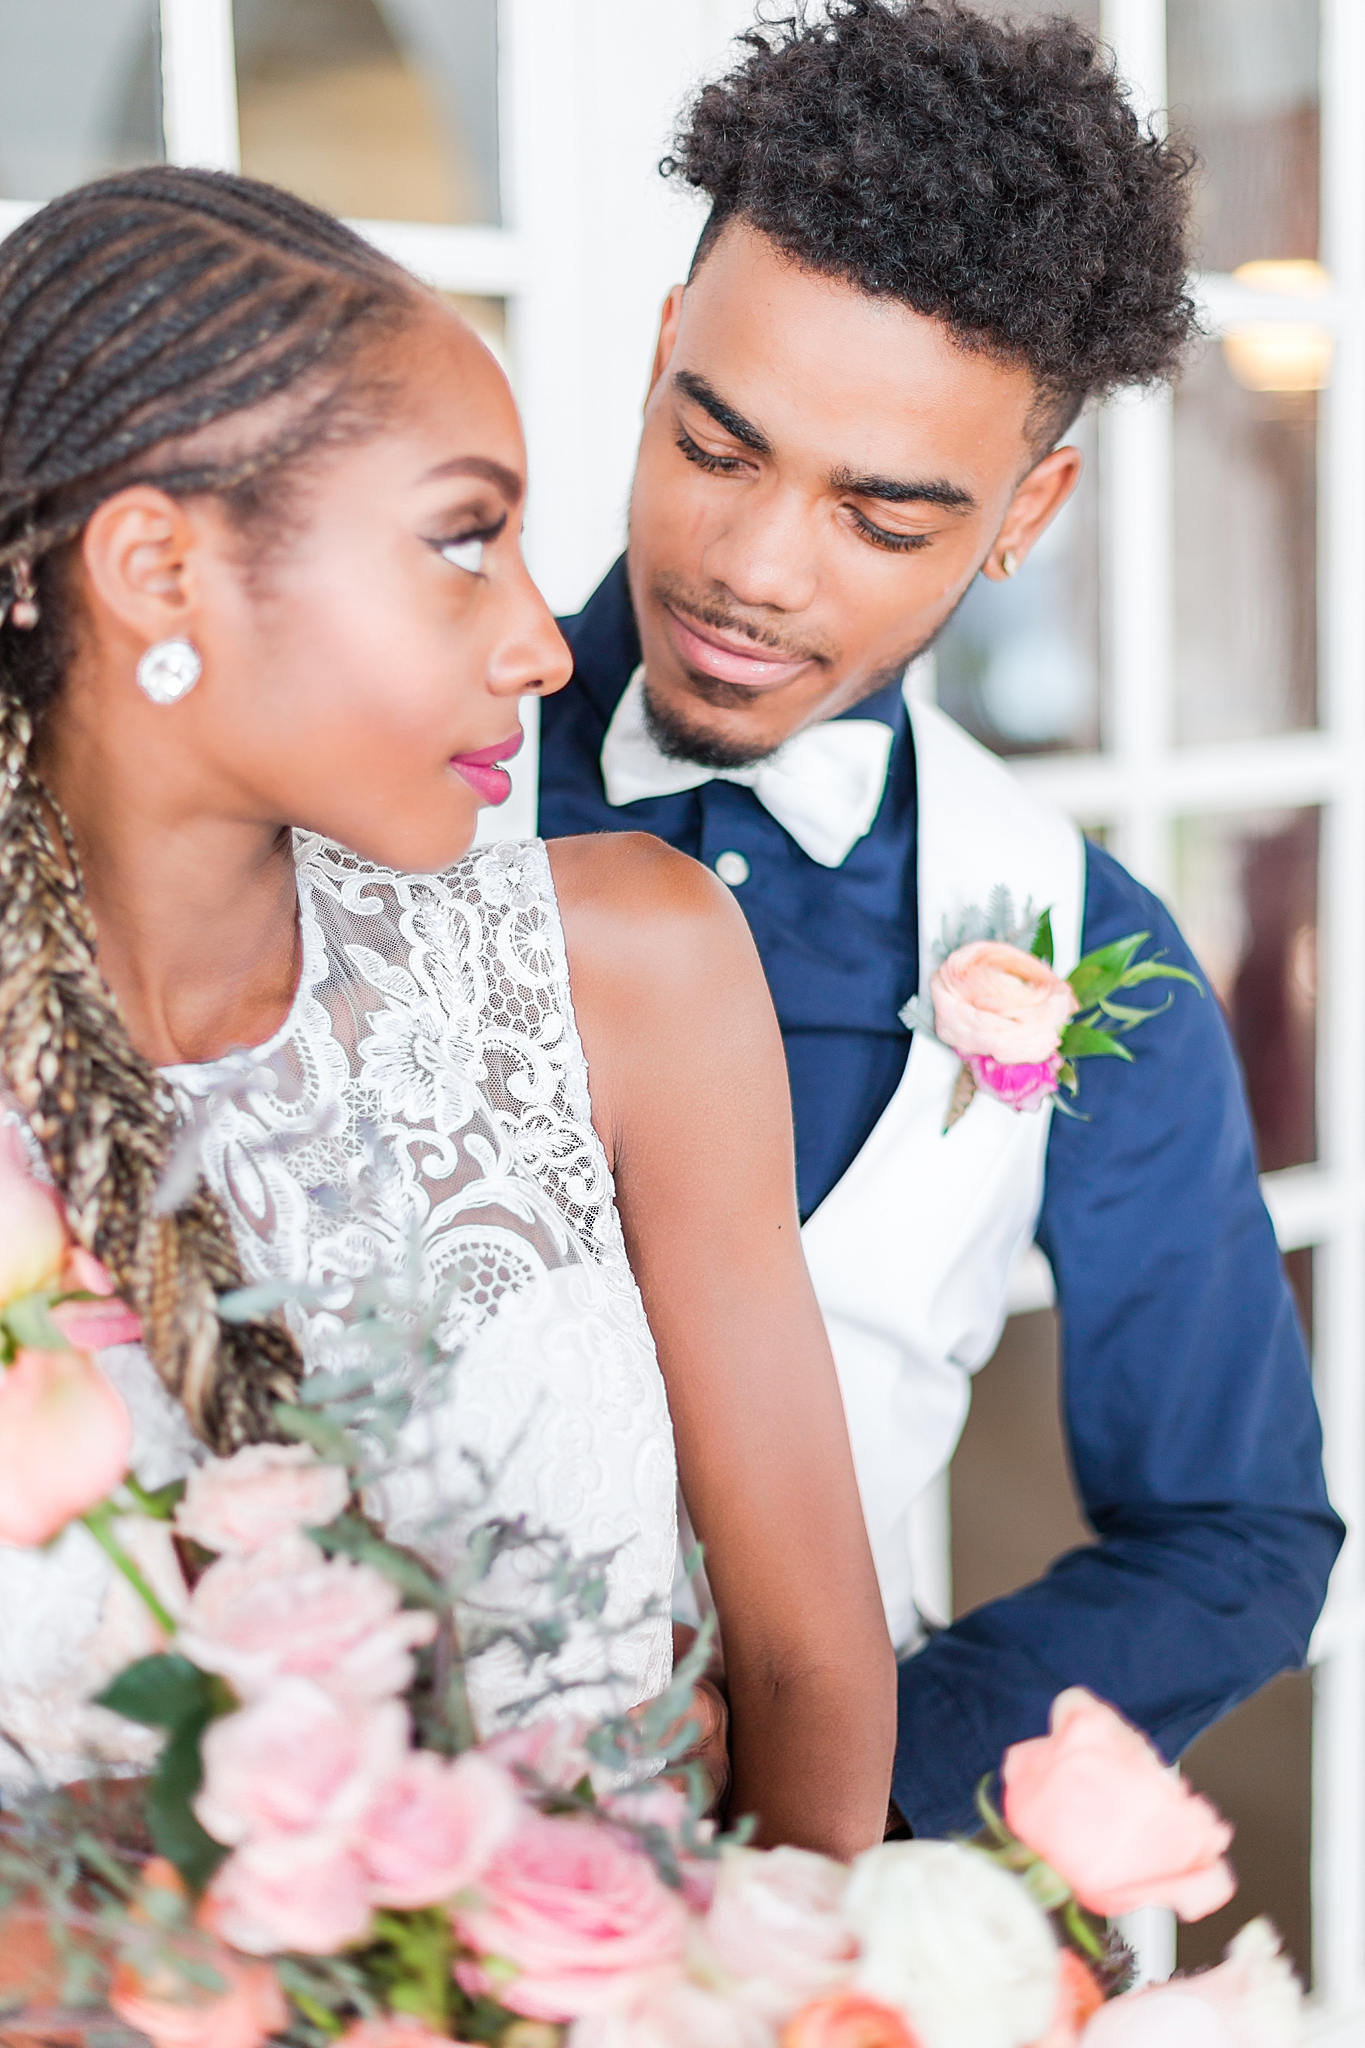 intimate-elopement-wedding-photography-at-belle-isle-boat-house-detroit-michigan-by-courtney-carolyn-photography_0051.jpg